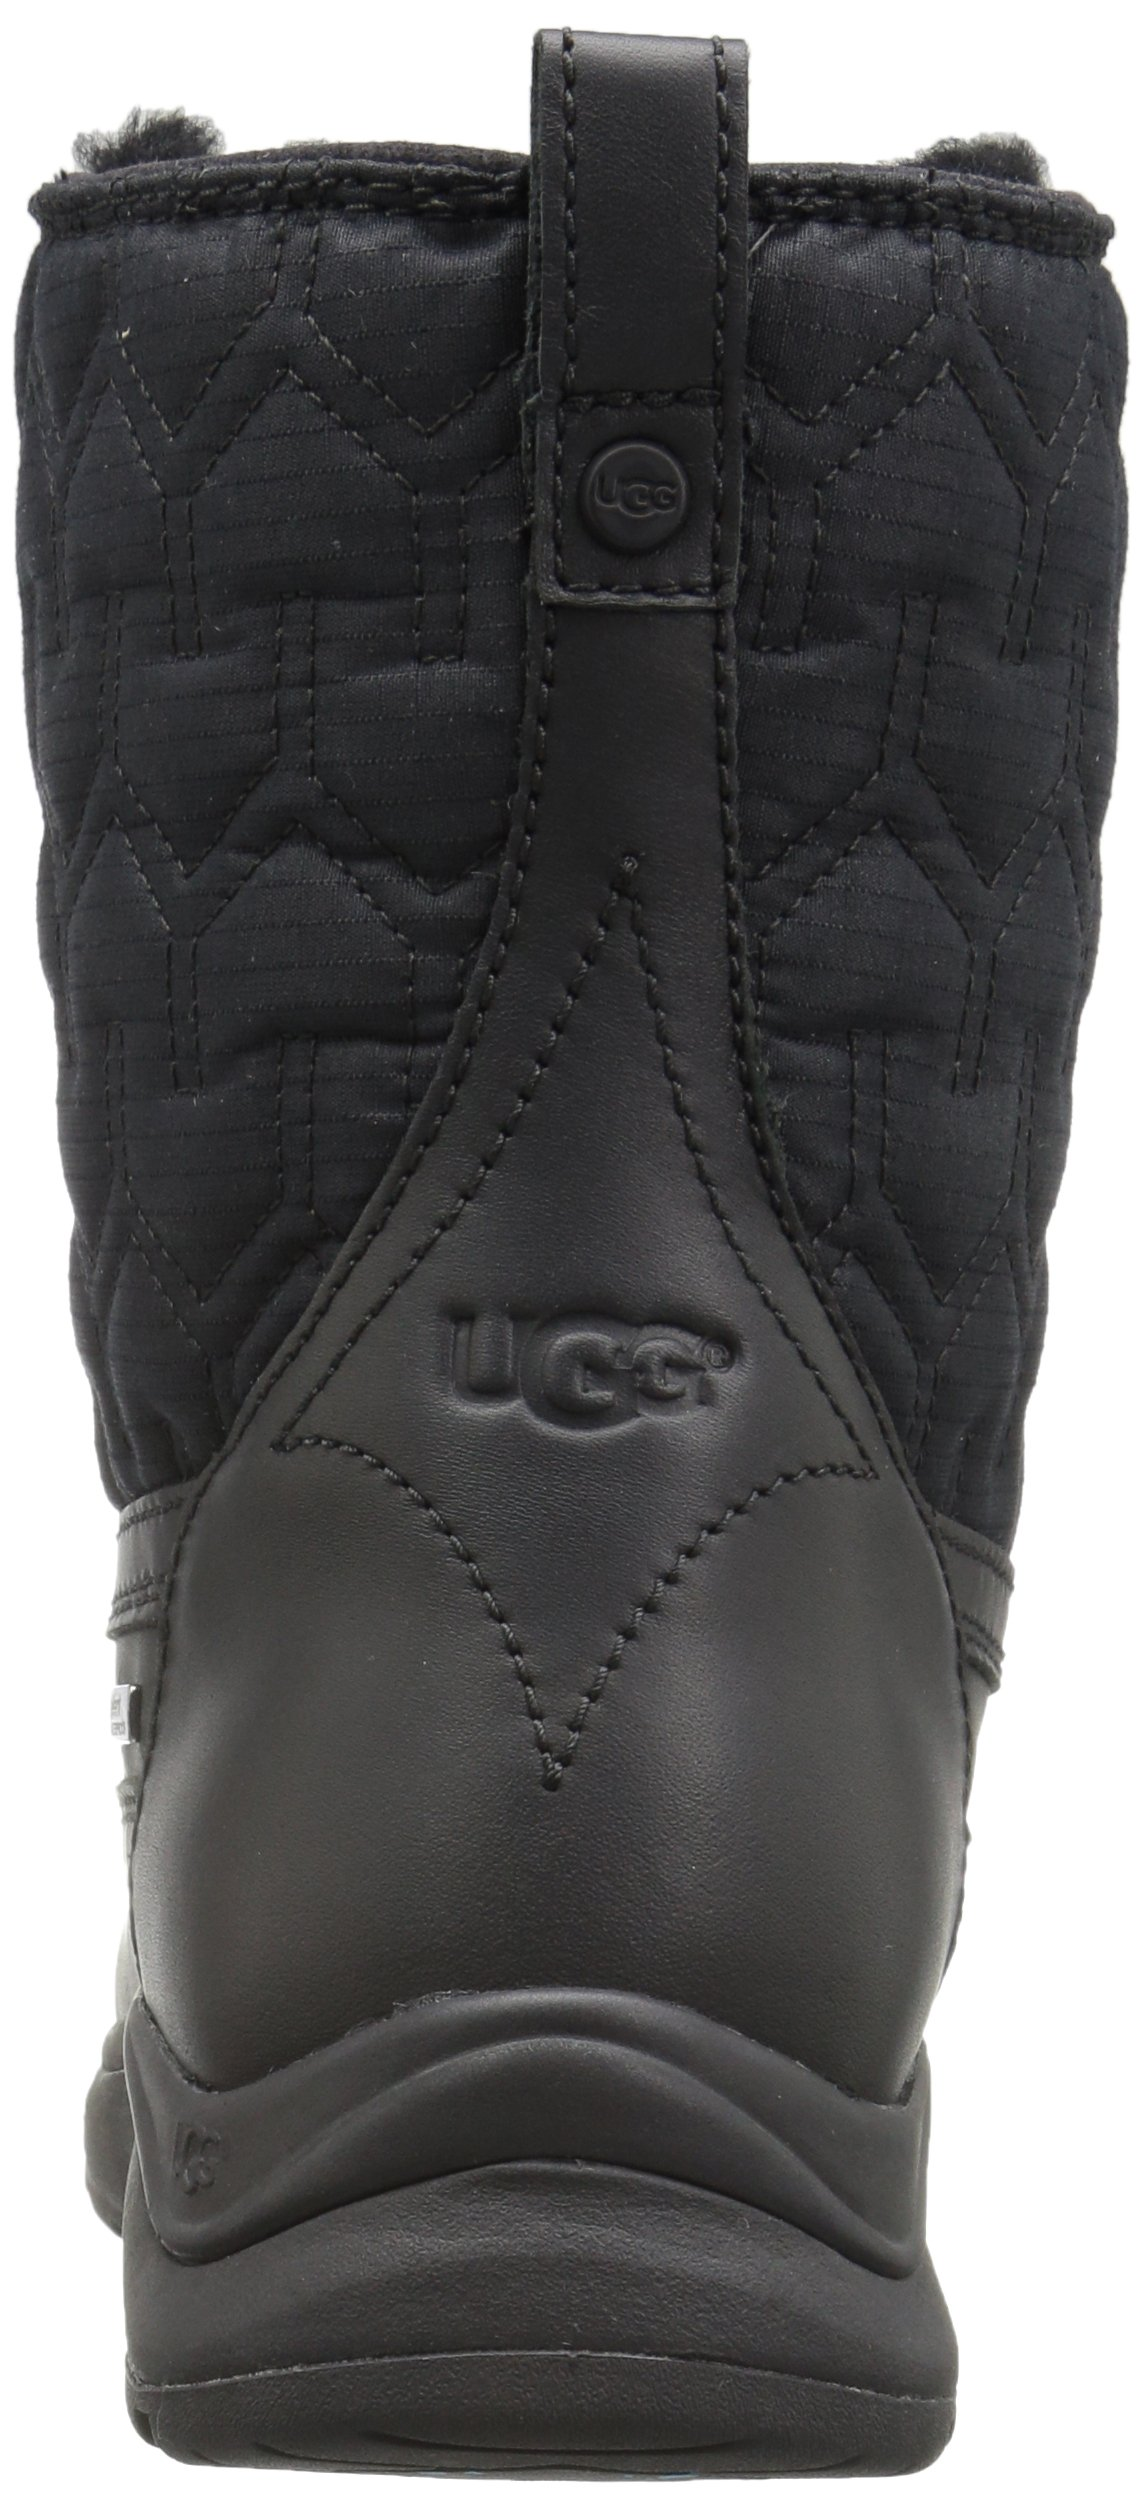 UGG Women's Lachlan Winter Boot, Black, 8 M US by UGG (Image #2)